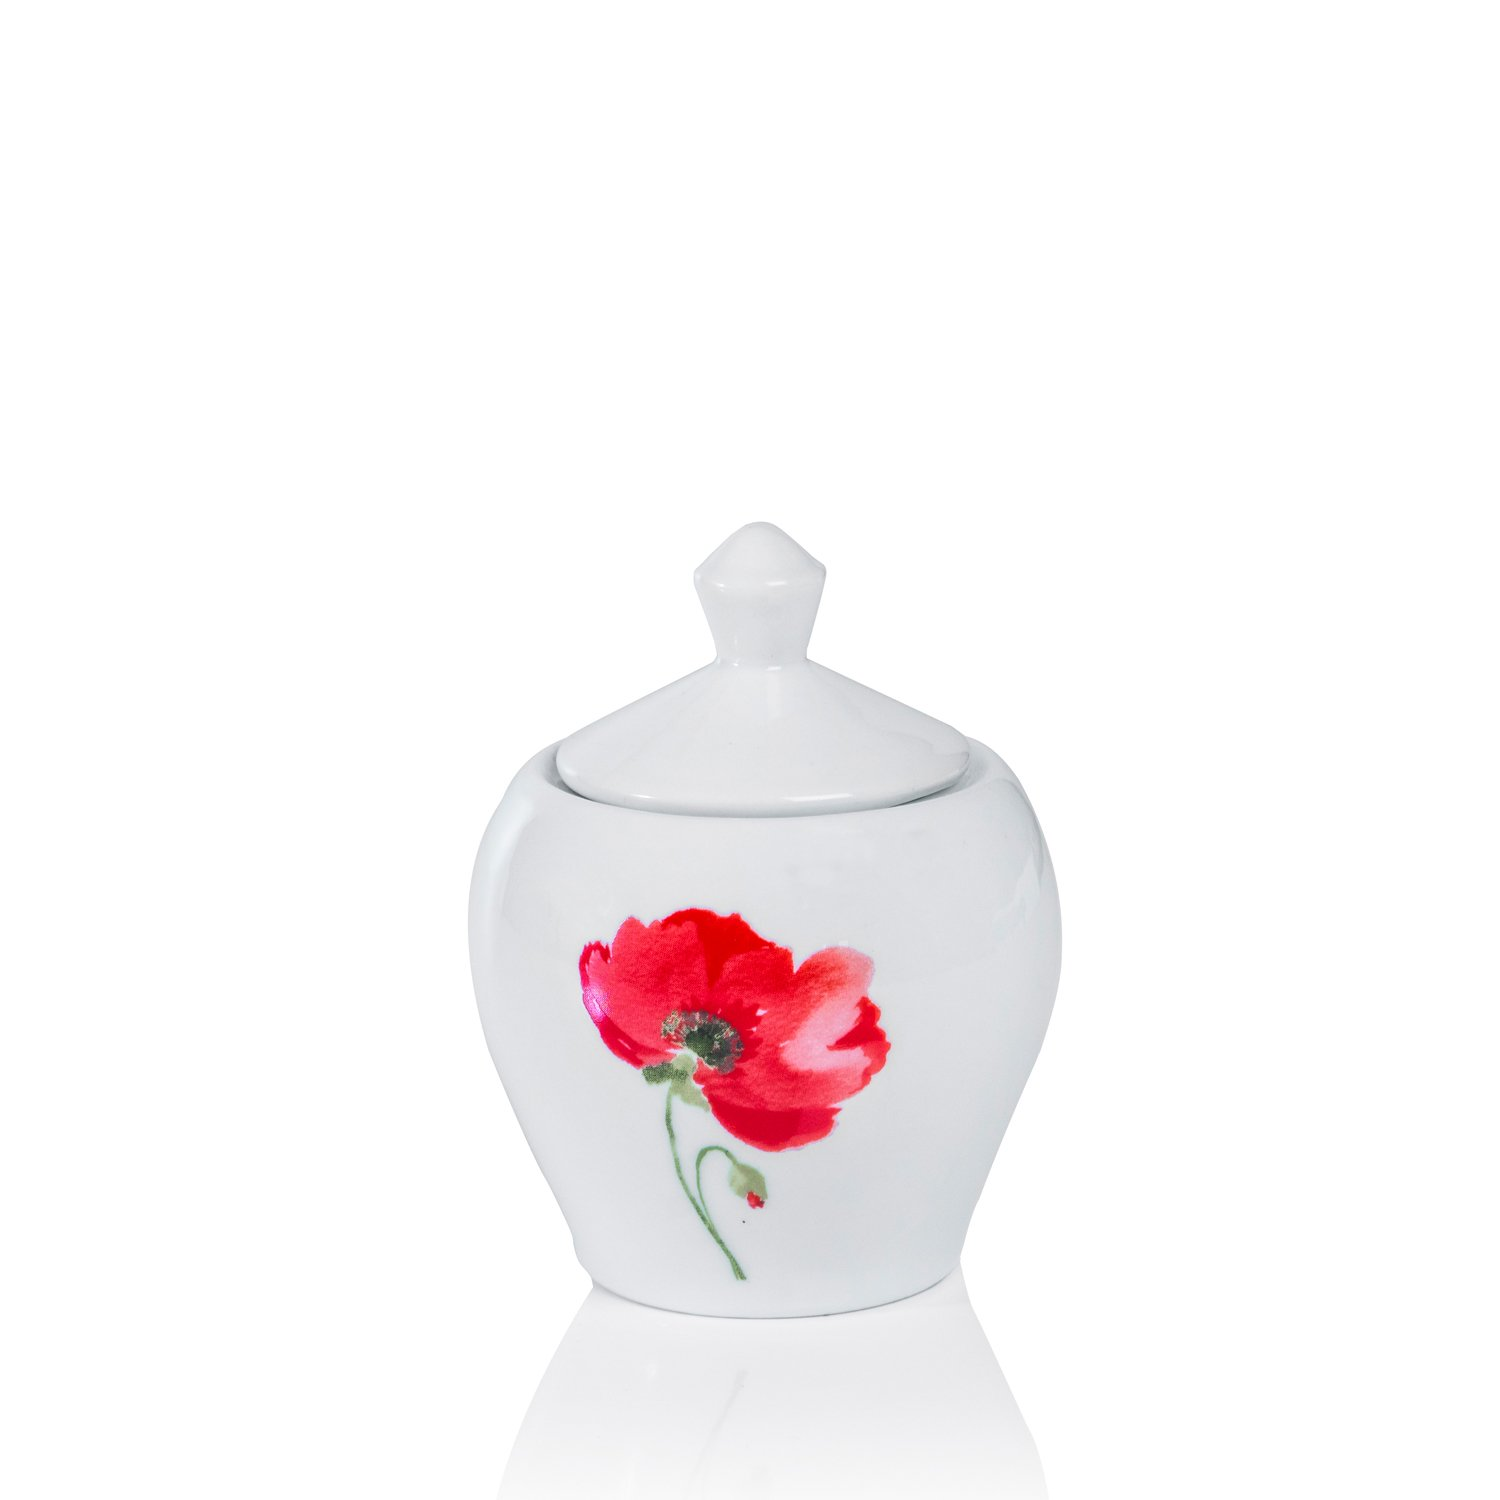 Sabichi Poppy Sugar Bowl, Porcelain, Red, 8.5 x 8.5 x 10 cm 181107